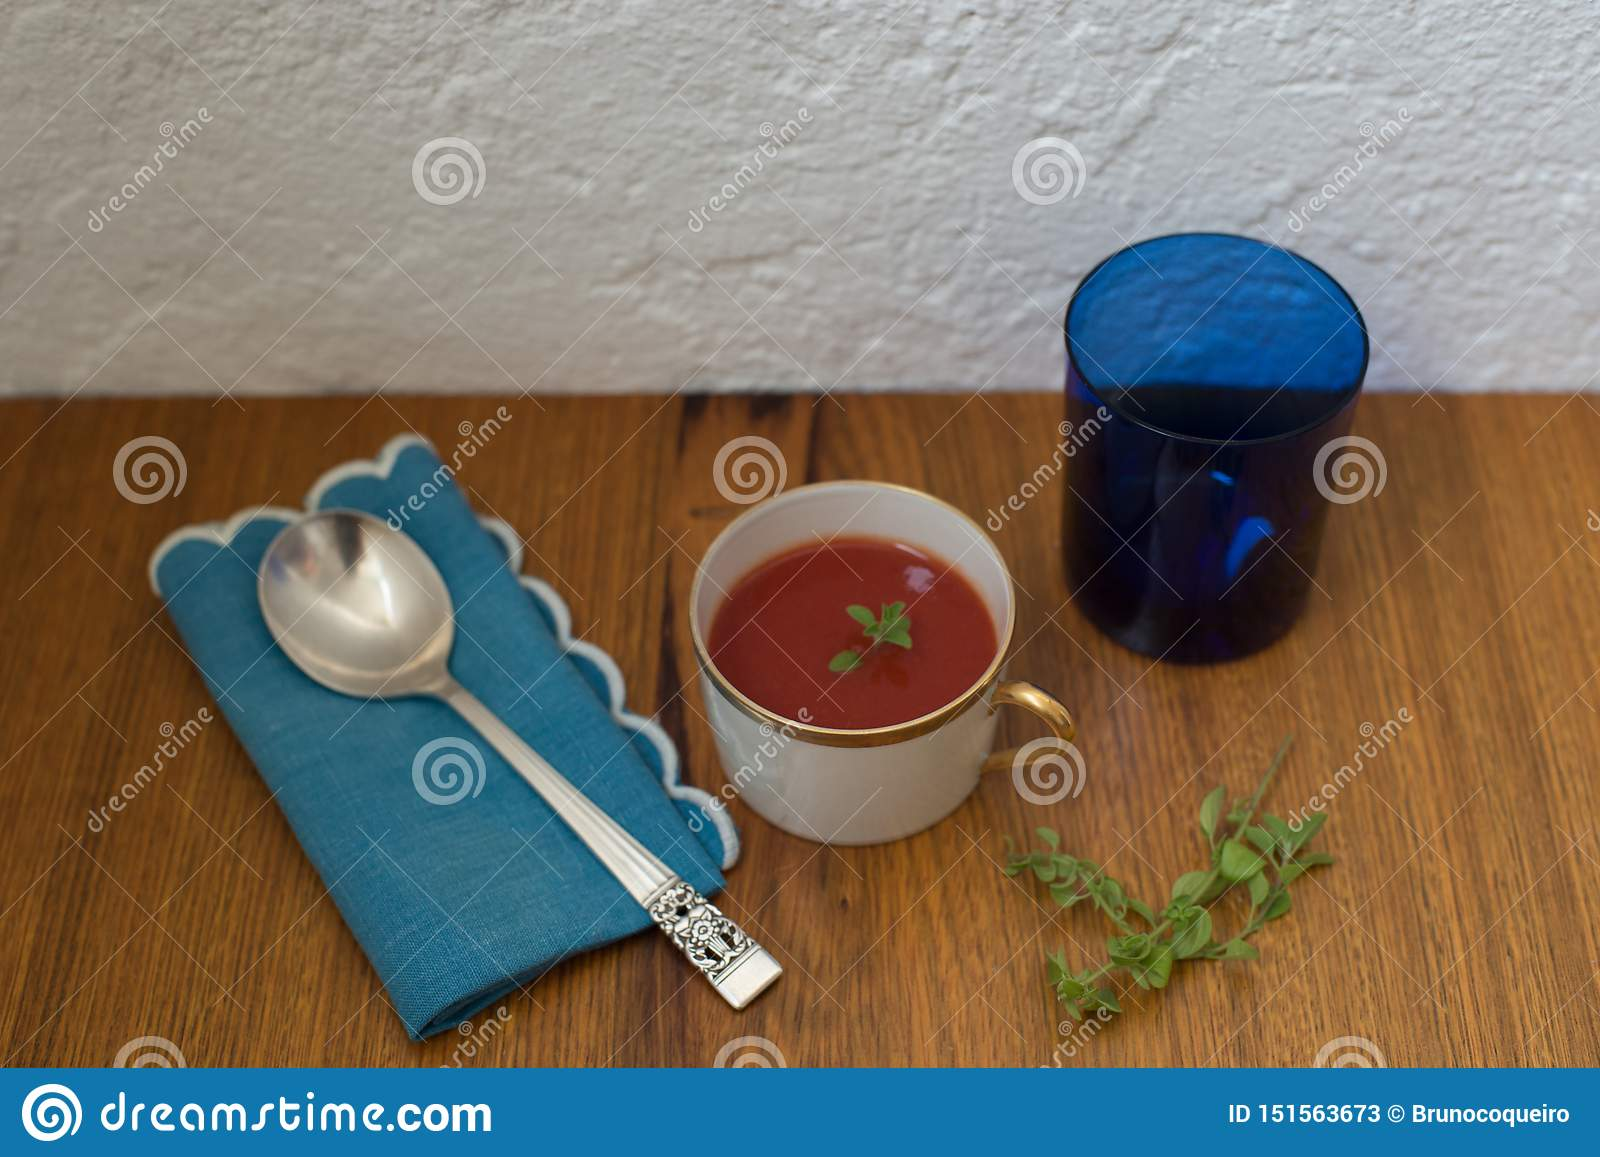 Italian tomato soup oregano leaves served in Chinese porcelain dishes in white and gold colors with silver spoon